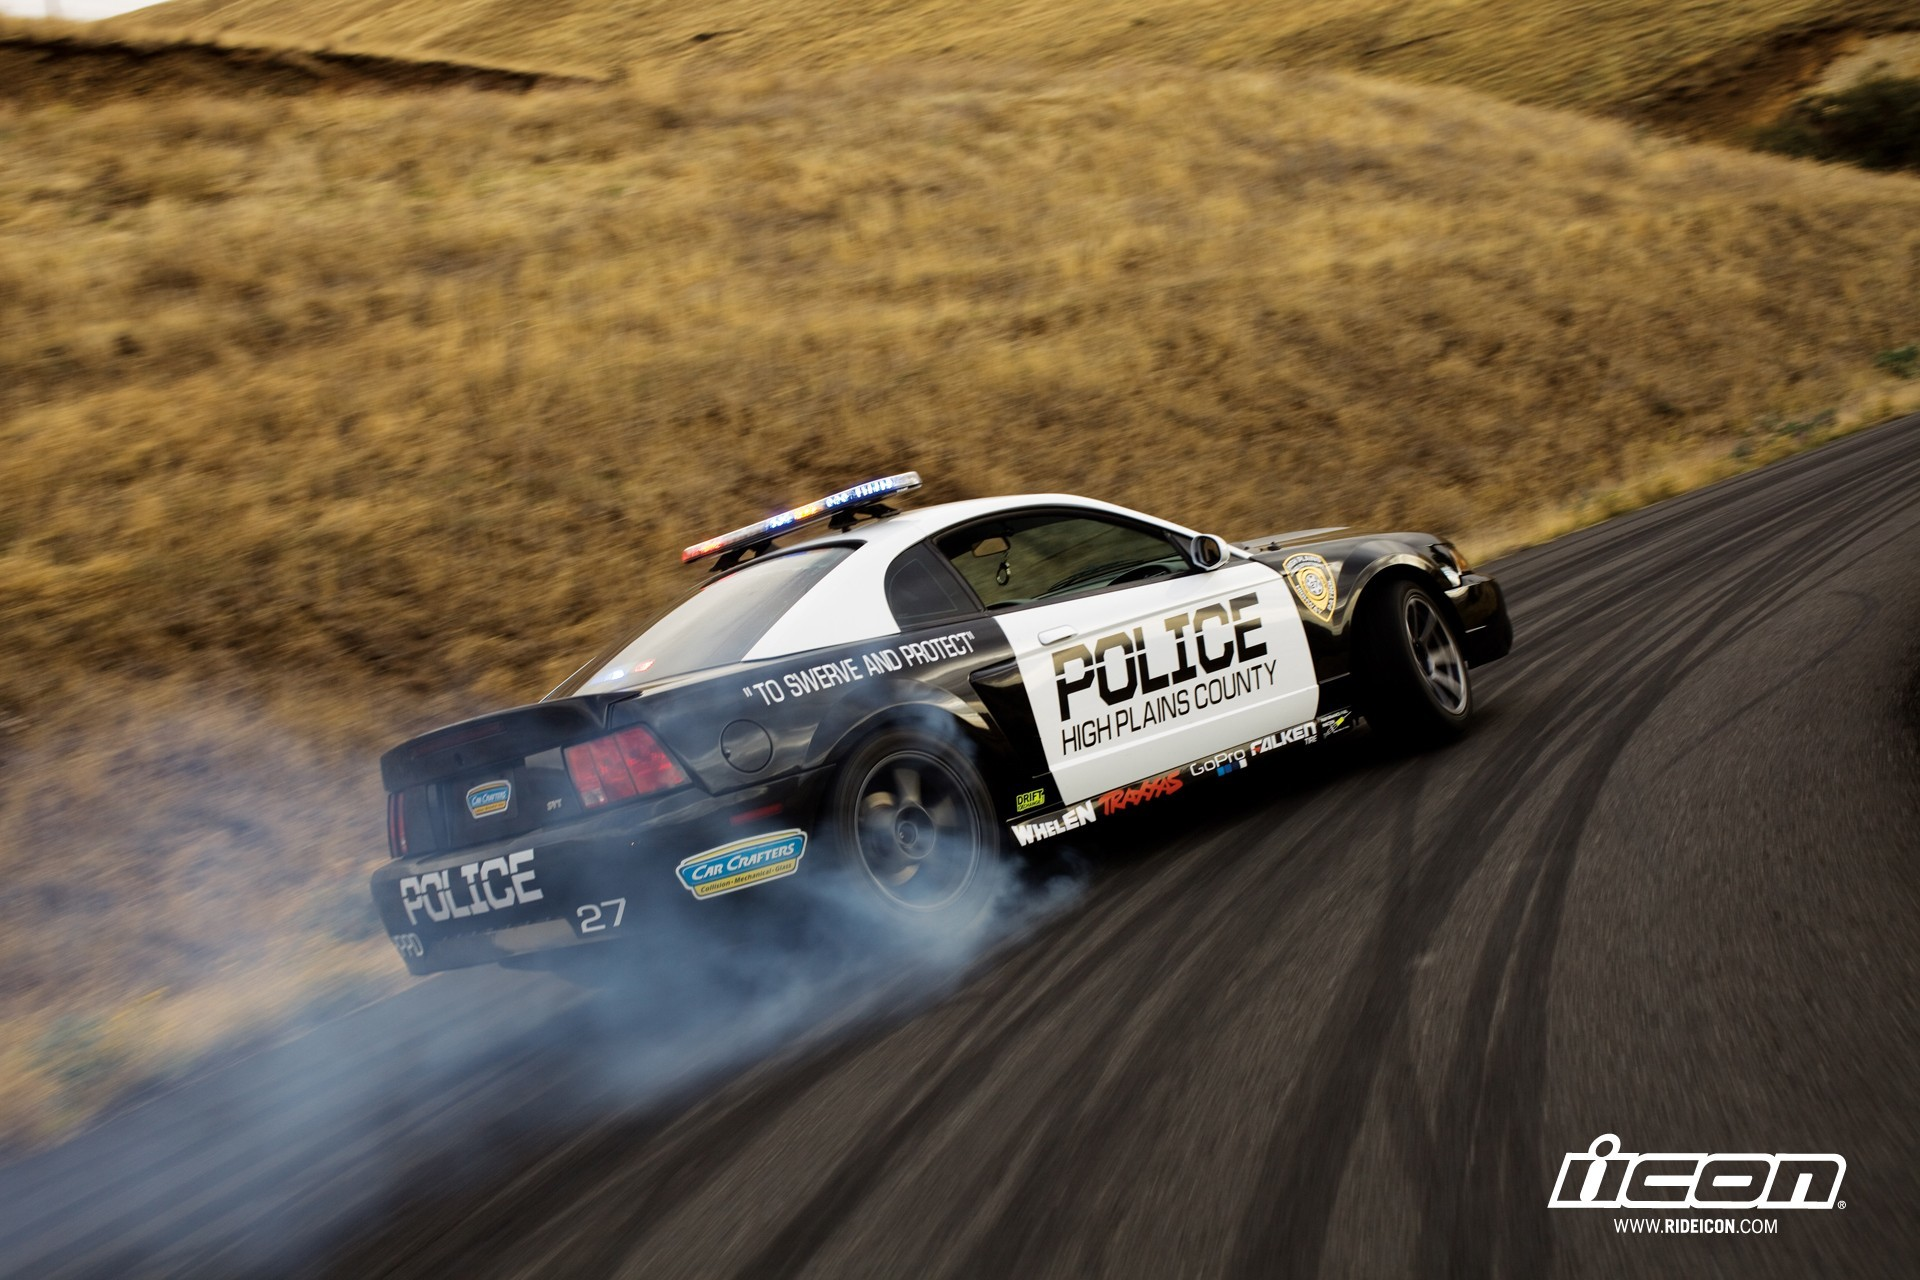 1920x1280 car, Muscle Cars, Drift, Pursuit, Icon, Police, Police Cars